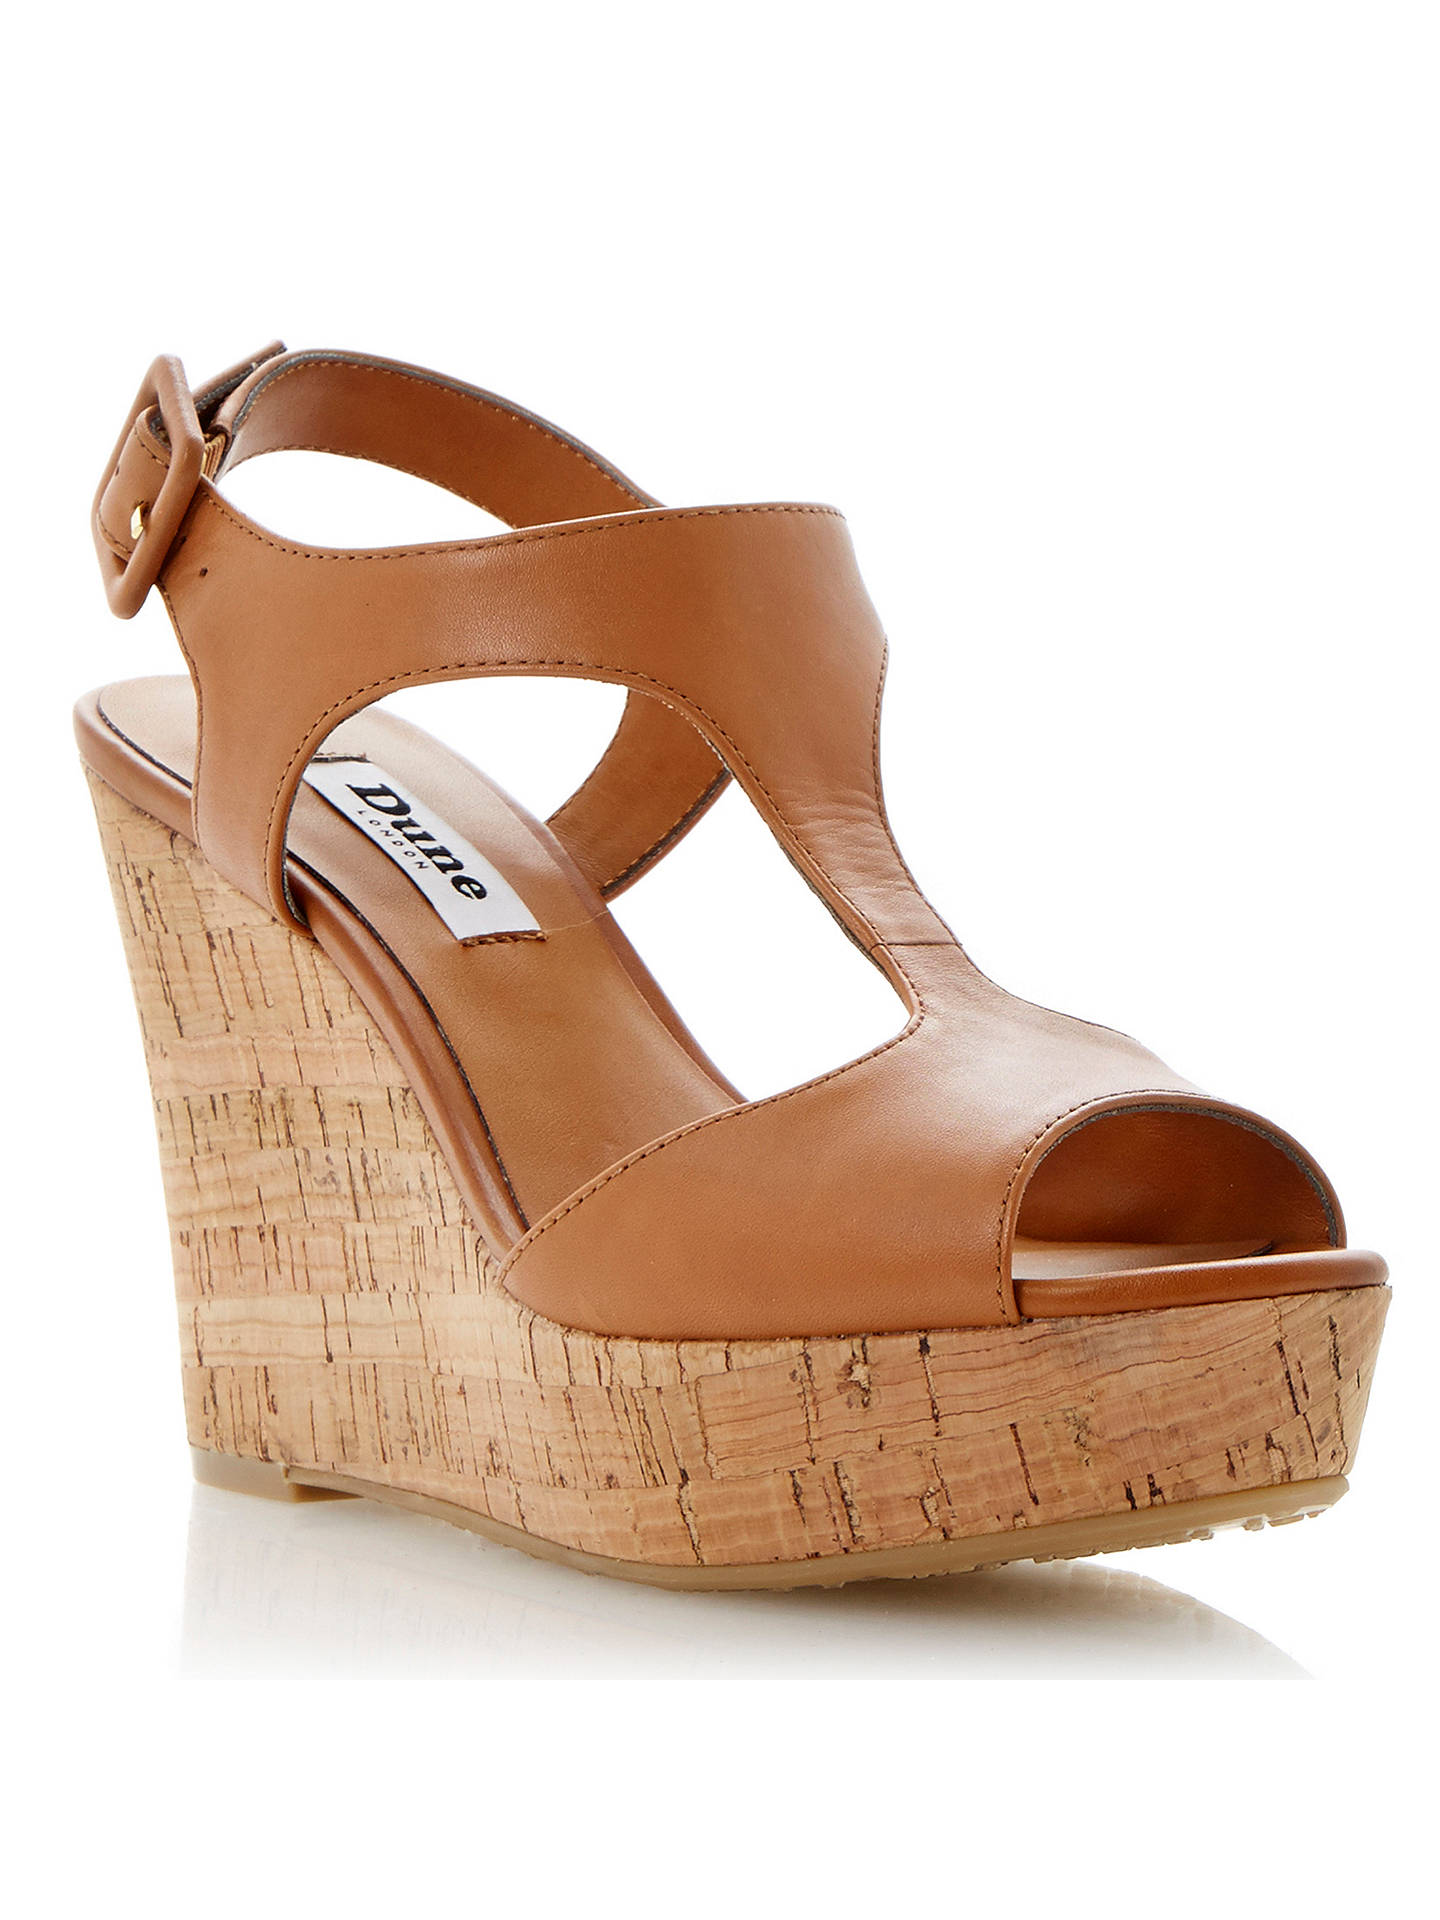 8a6414277 Buy Dune Goaly Leather Cork Wedge Platform Sandals, Tan, 3 Online at  johnlewis.